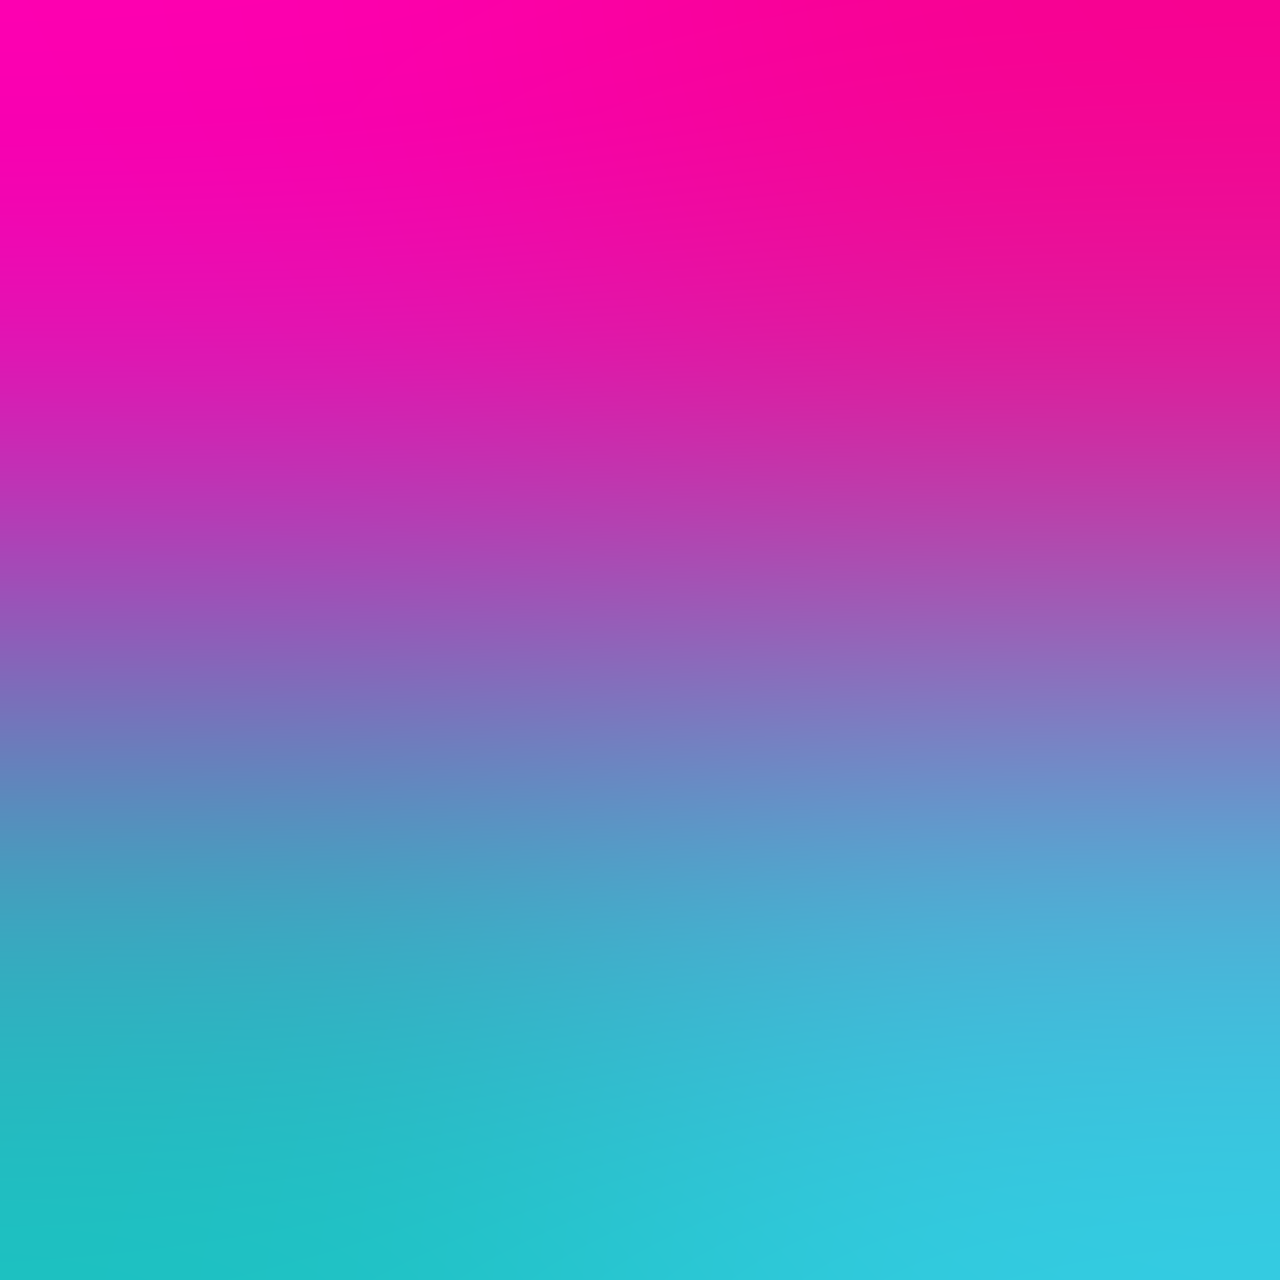 Fading Colors Background My Site Daot Tk Samsung Wallpaper Teal Wallpaper Blue Wallpapers